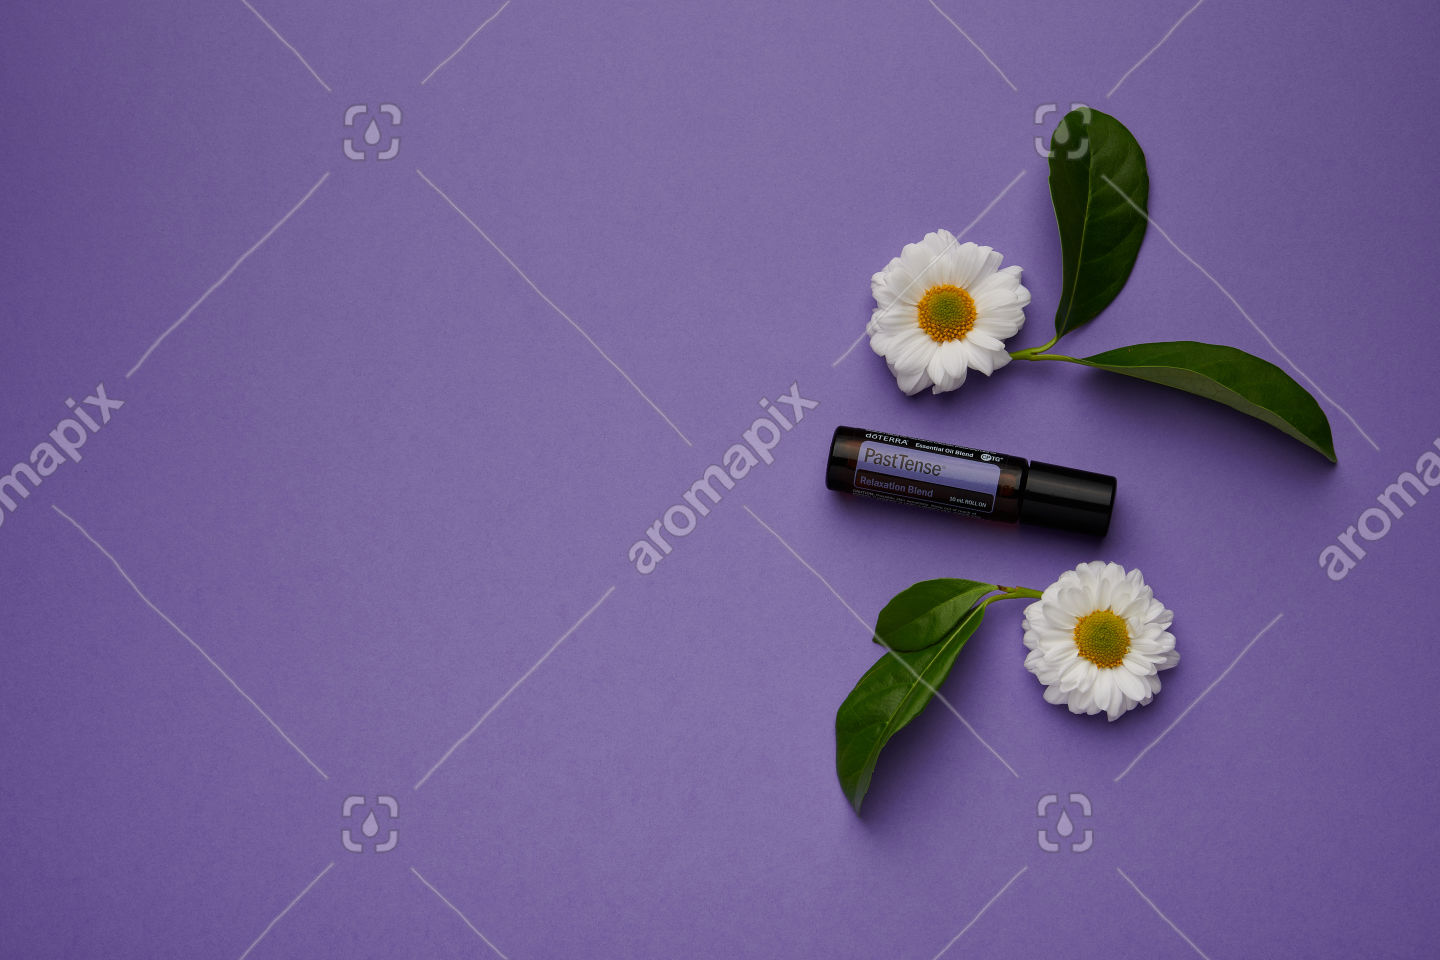 doTERRA PastTense with flowers and leaves on purple